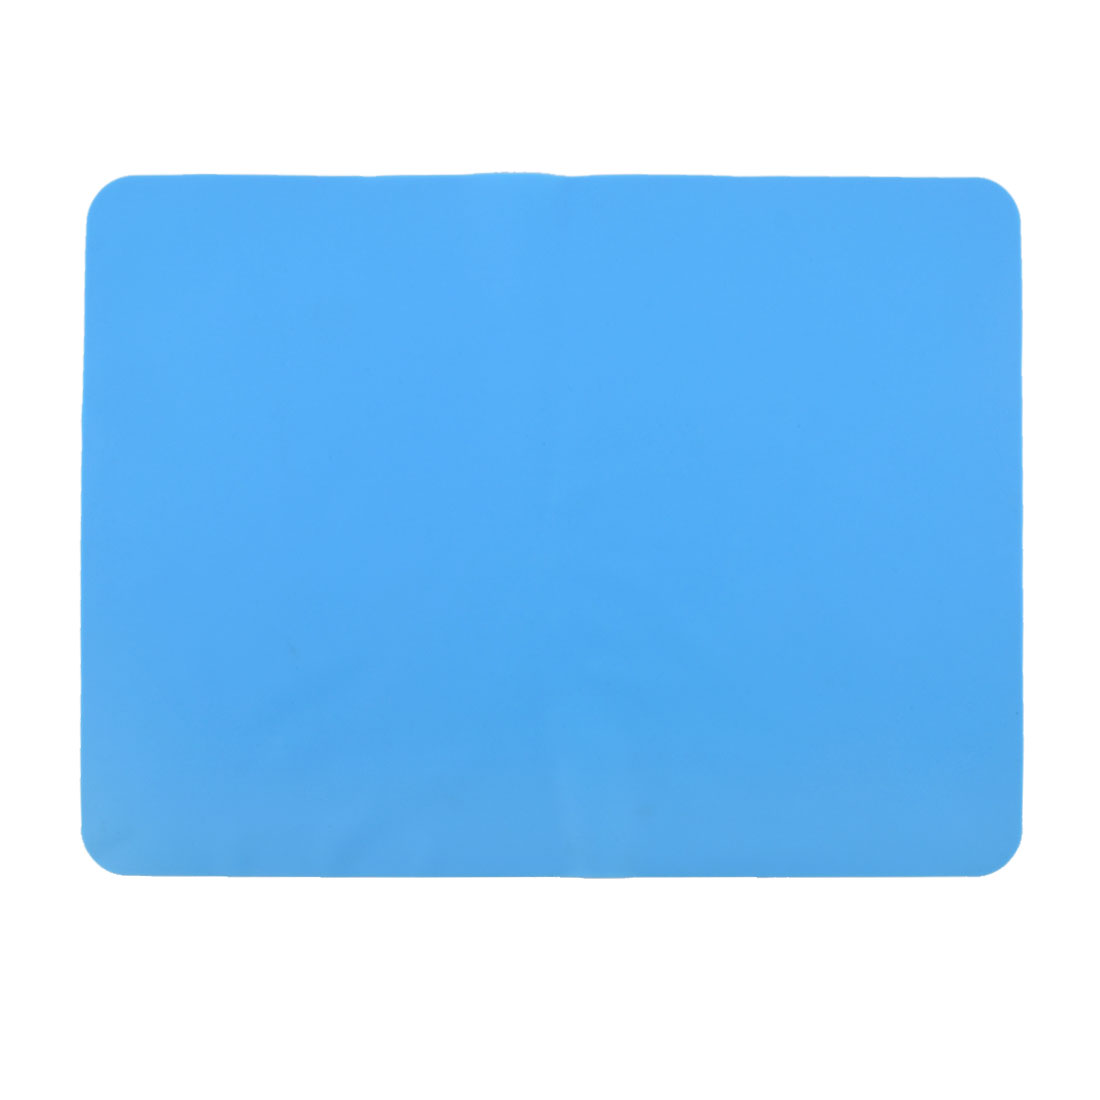 Western Restaurant Silicone Table Heat Resistant Mat Cushion Placemat Blue